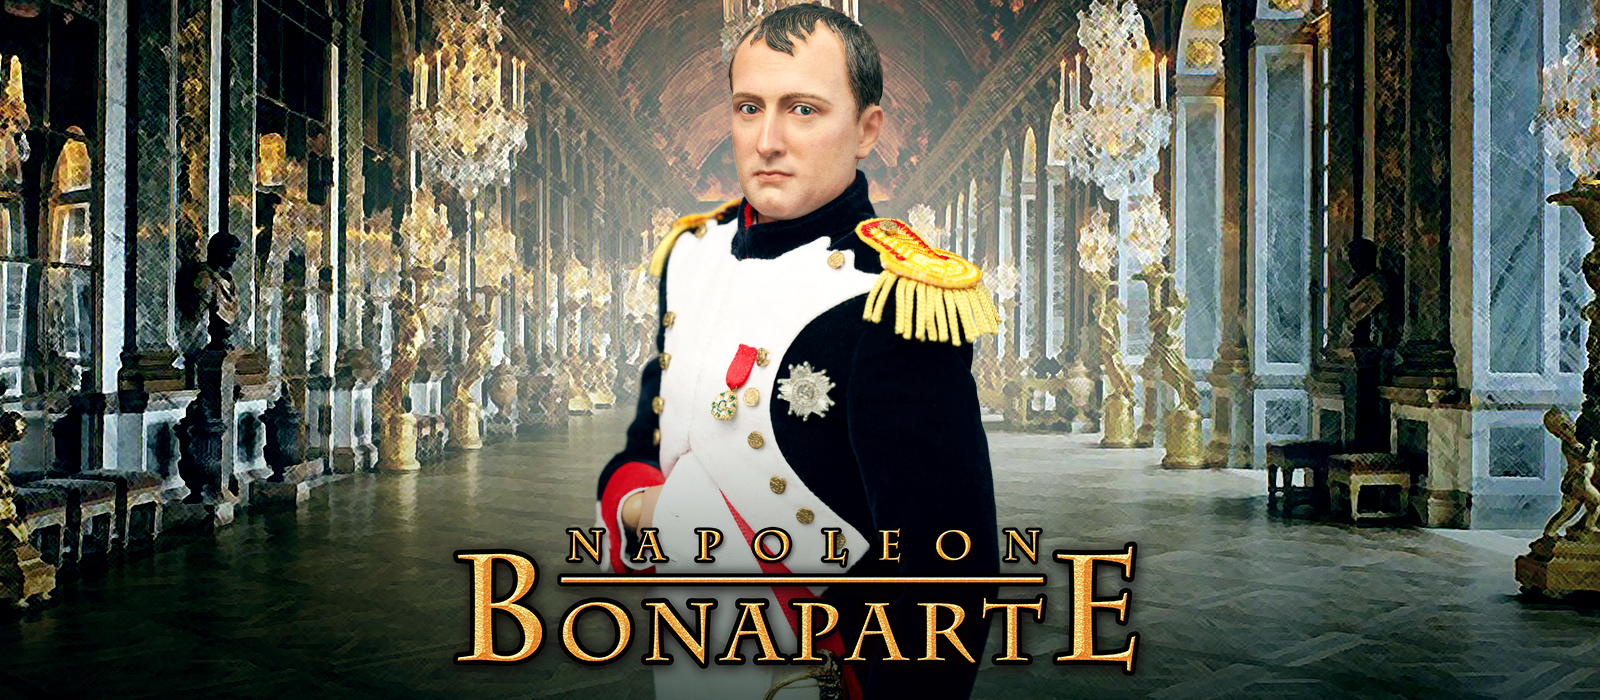 N80121 Emperor of the French Napoleon Bonaparte